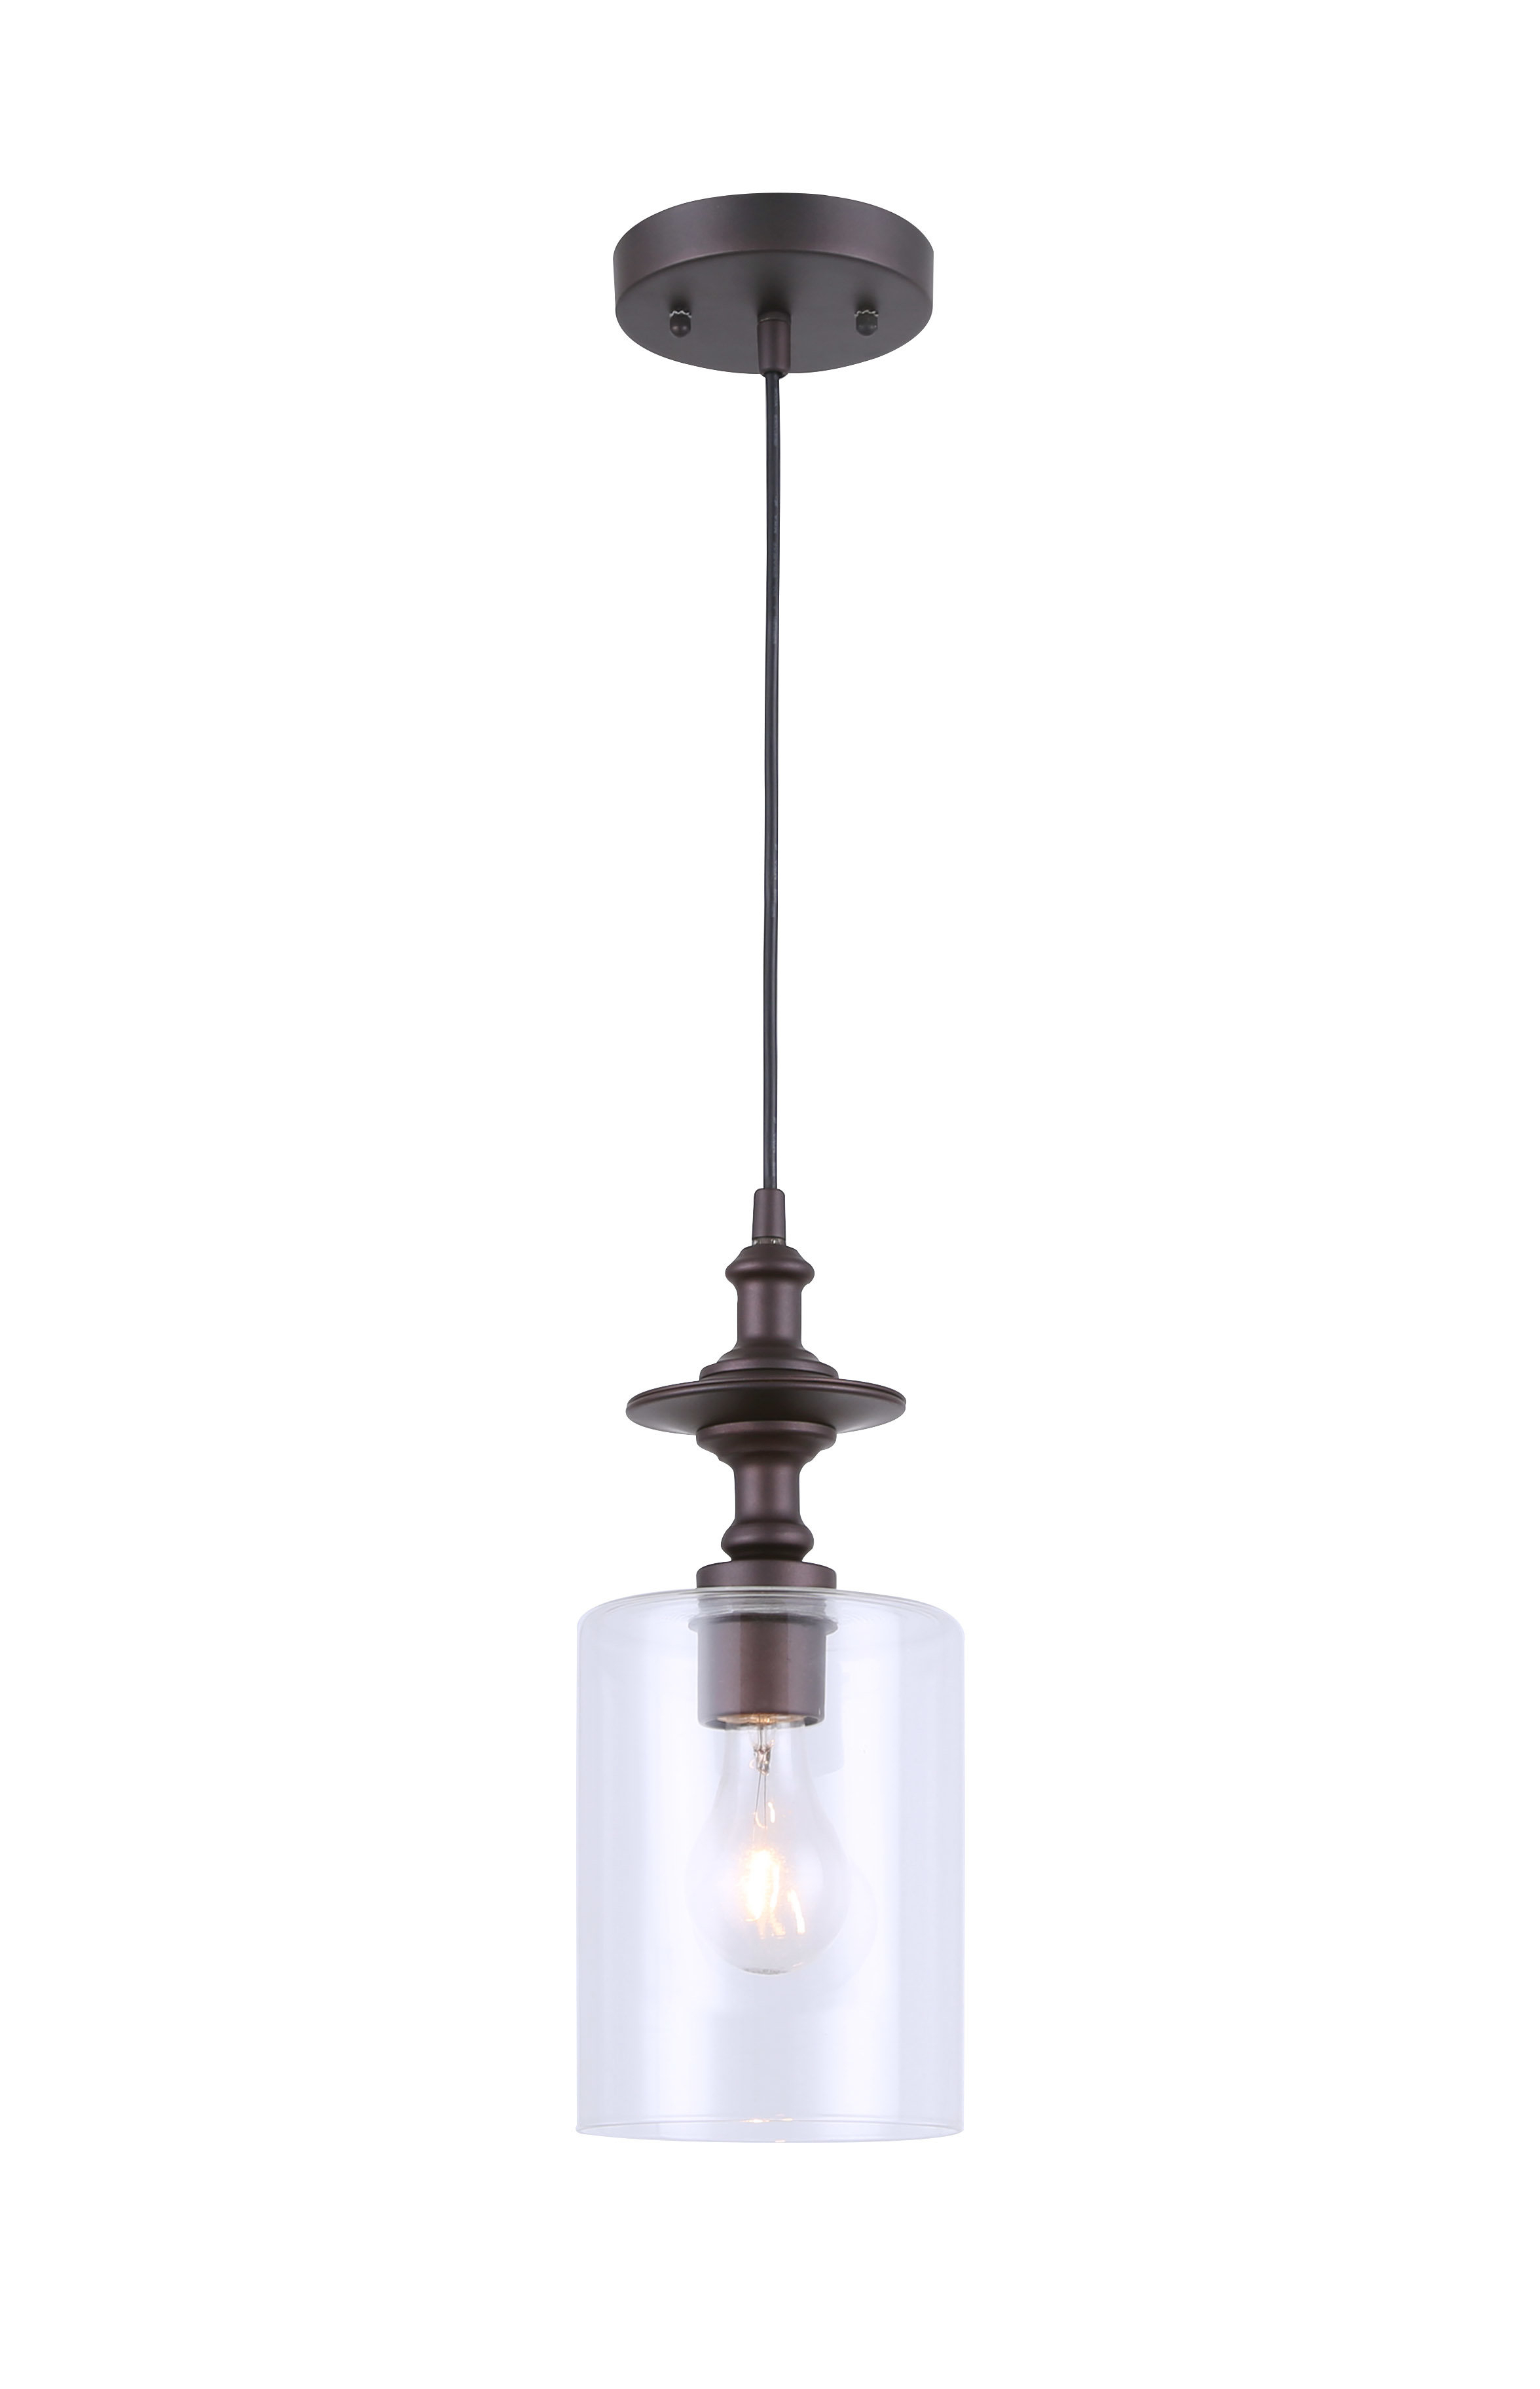 2019 Scruggs 1 Light Geometric Pendants Inside Moyer 1 Light Single Cylinder Pendant (View 16 of 25)